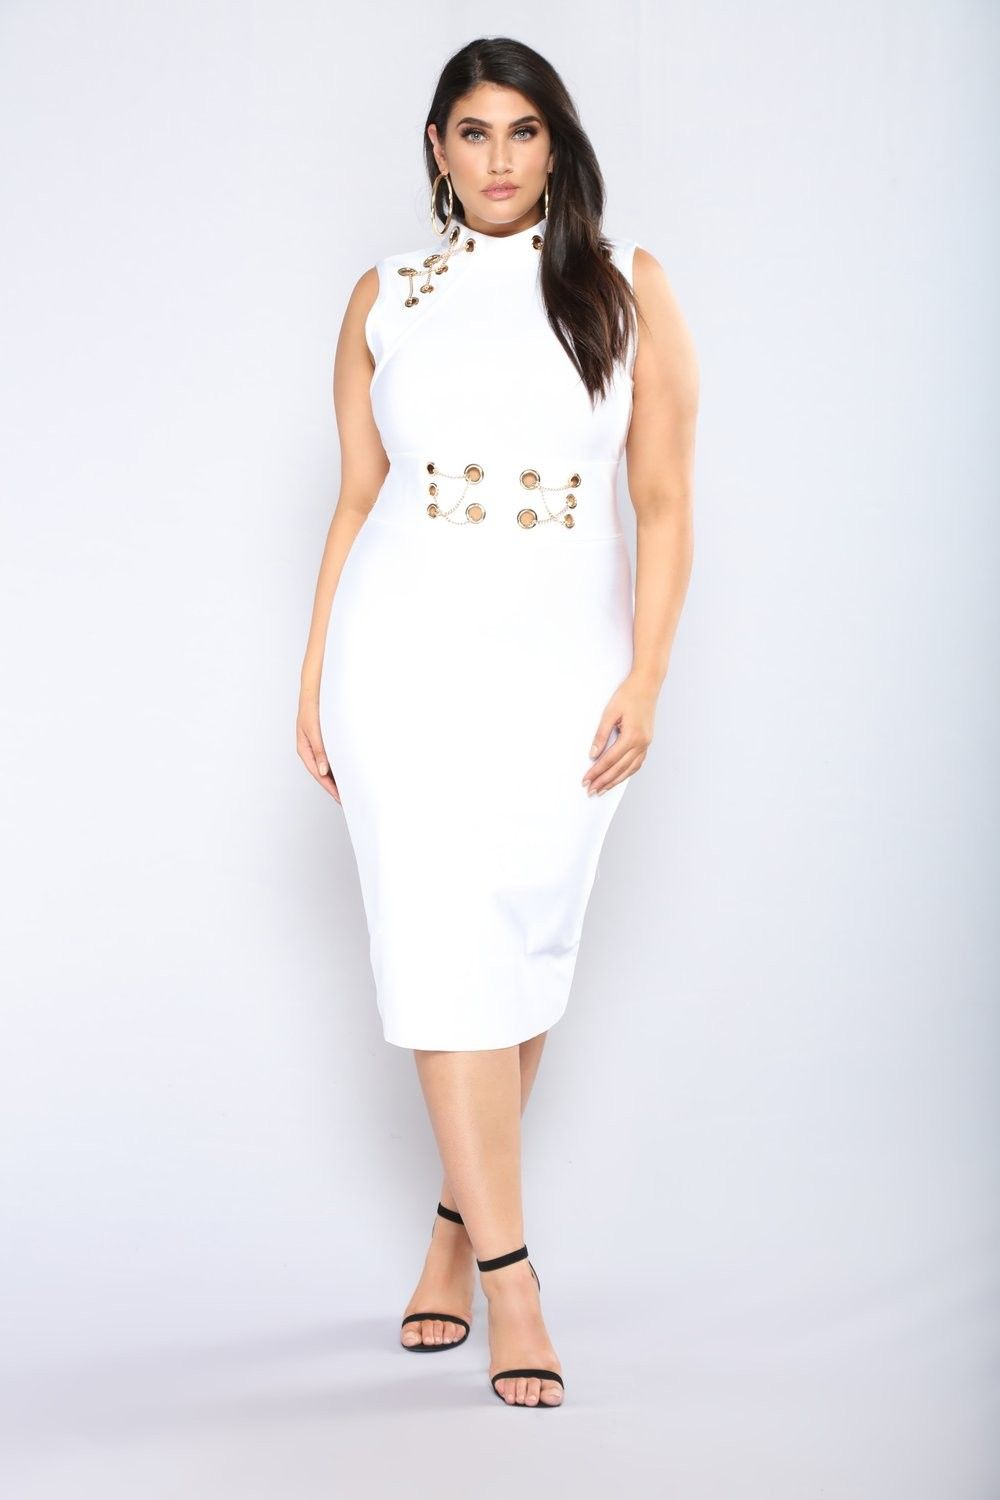 Plus Size Change This Love Bandage Dress - White $54.99 ...